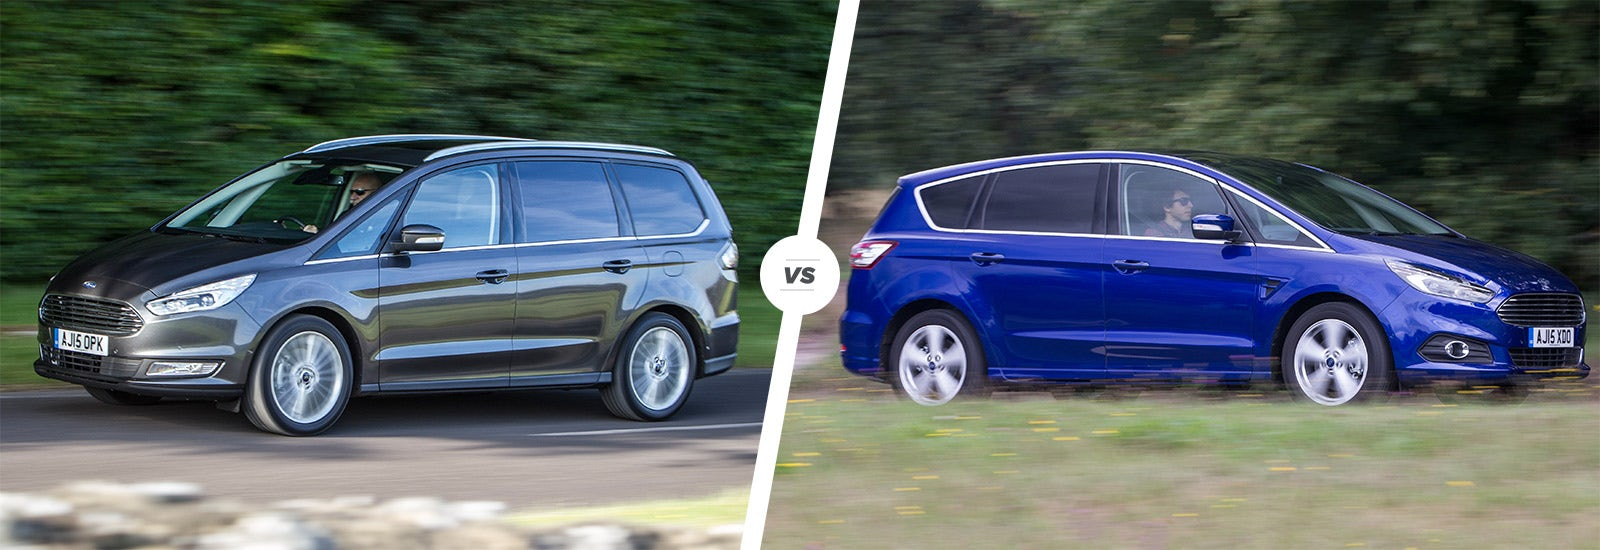 ford galaxy vs ford s max comparison carwow. Black Bedroom Furniture Sets. Home Design Ideas